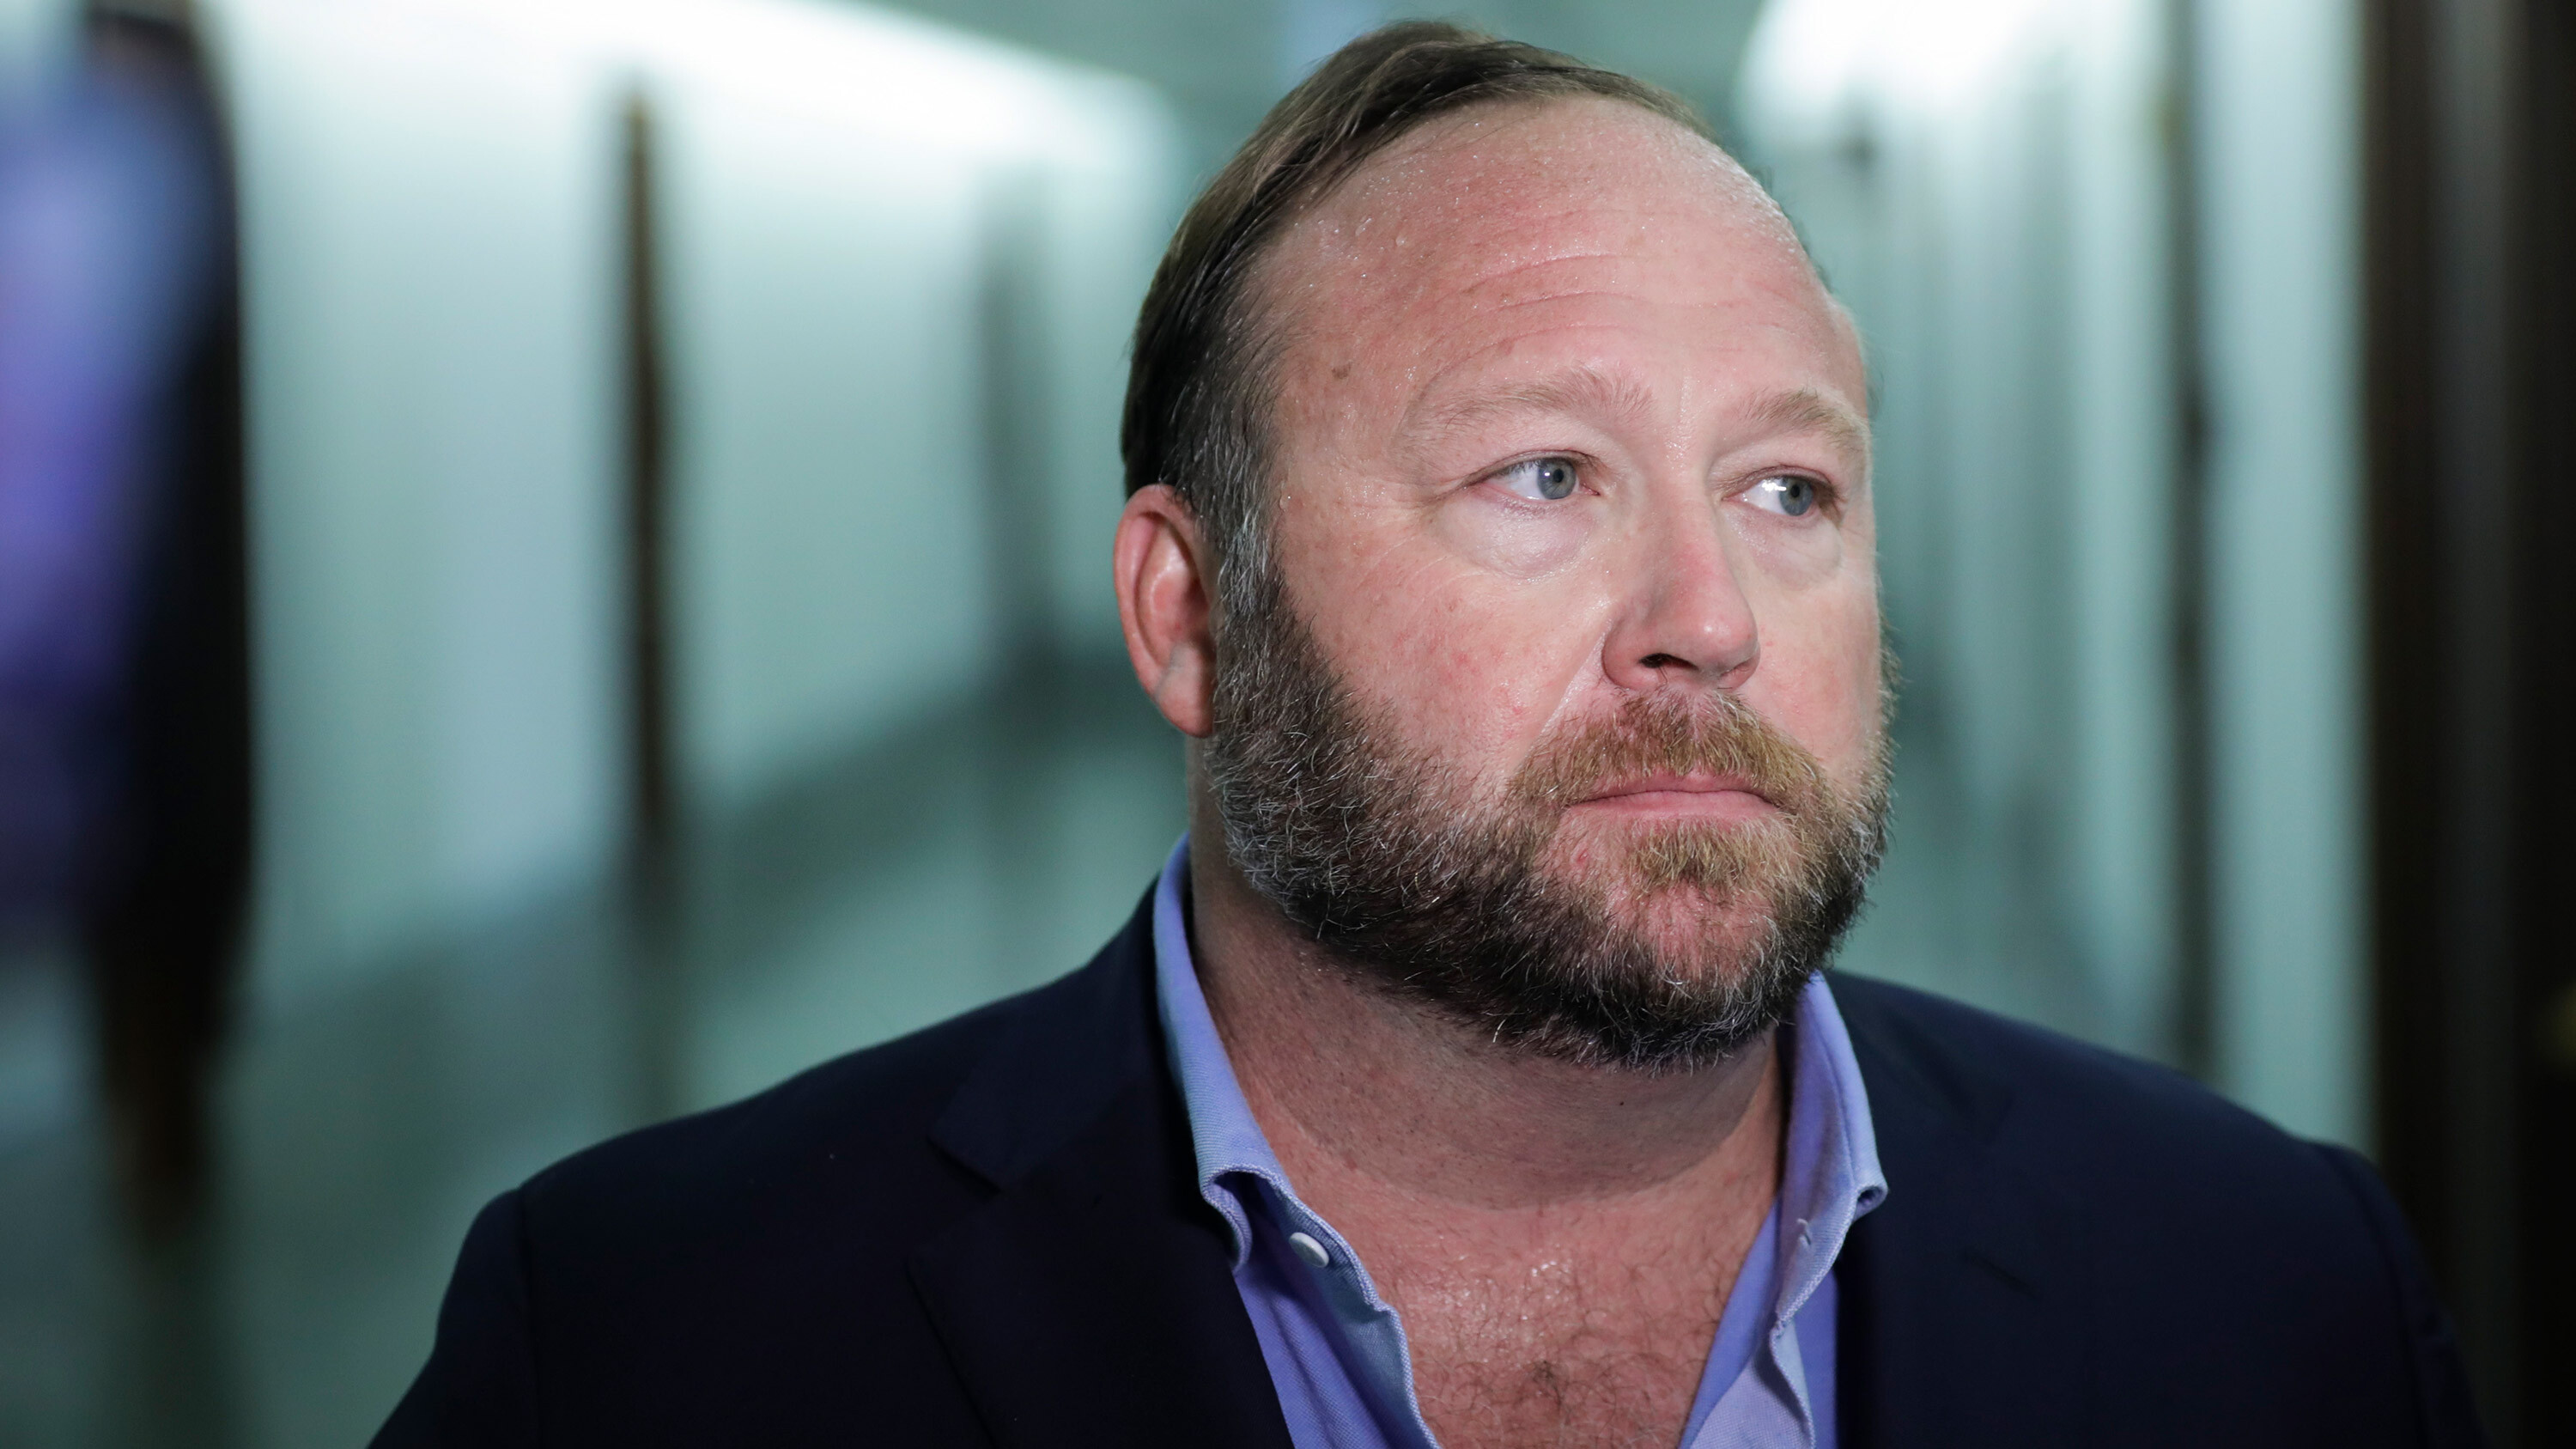 Infowars host Alex Jones is responsible for damages triggered by his false claims on the Sandy Hook shooting, judge rules